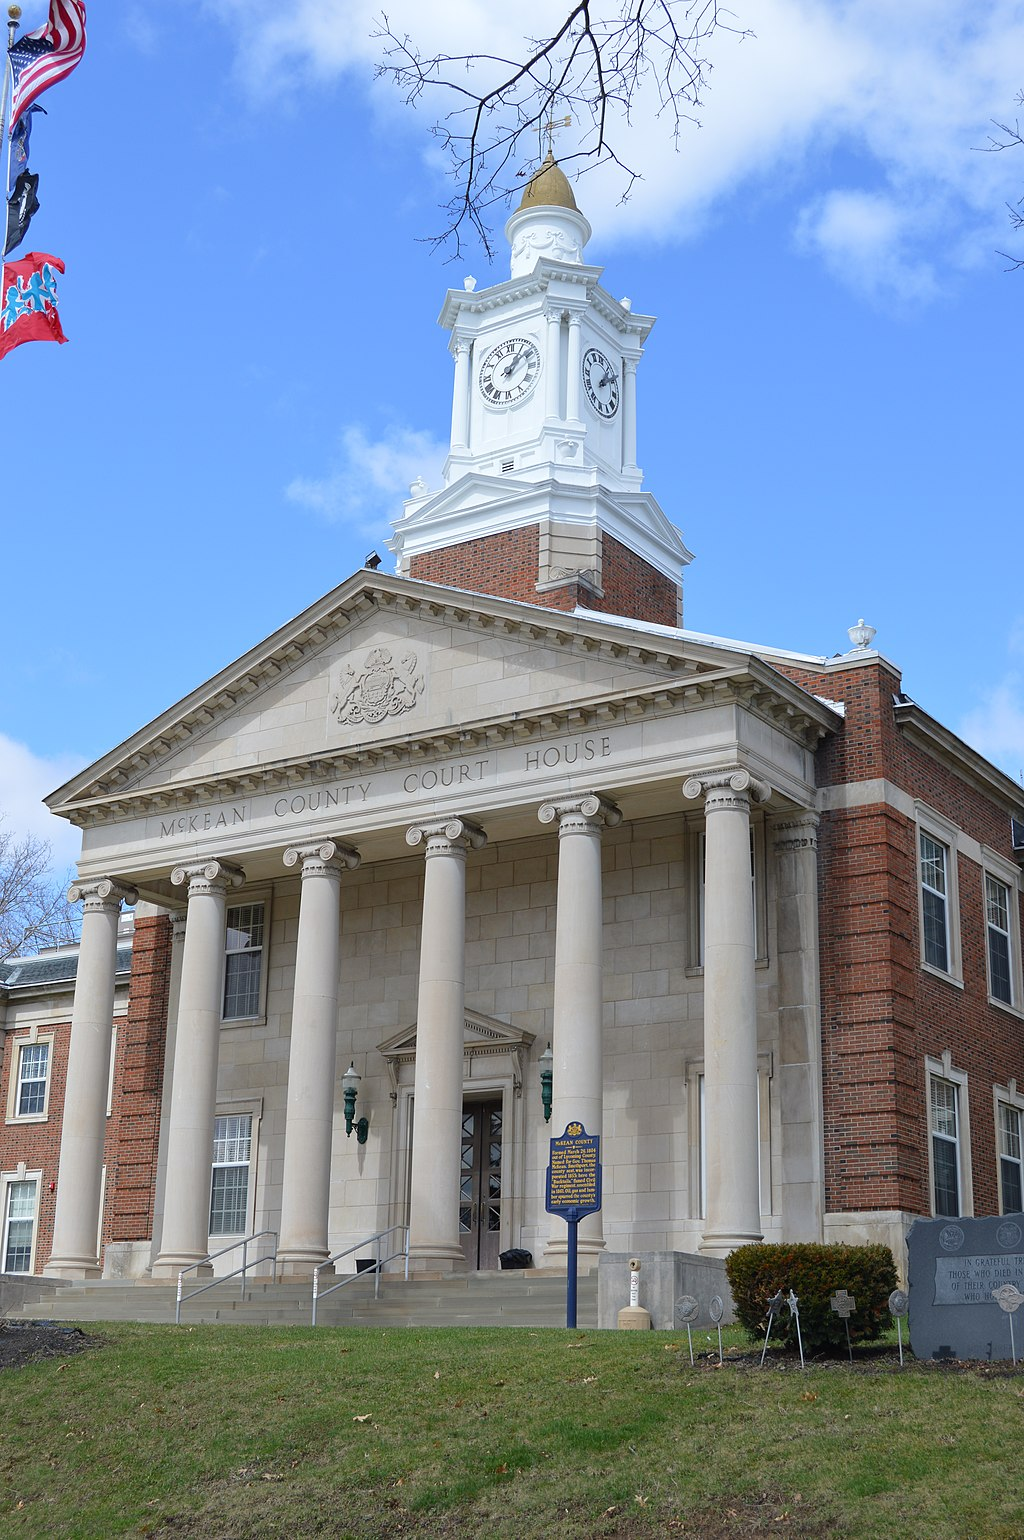 McKean County Courthouse main entrance